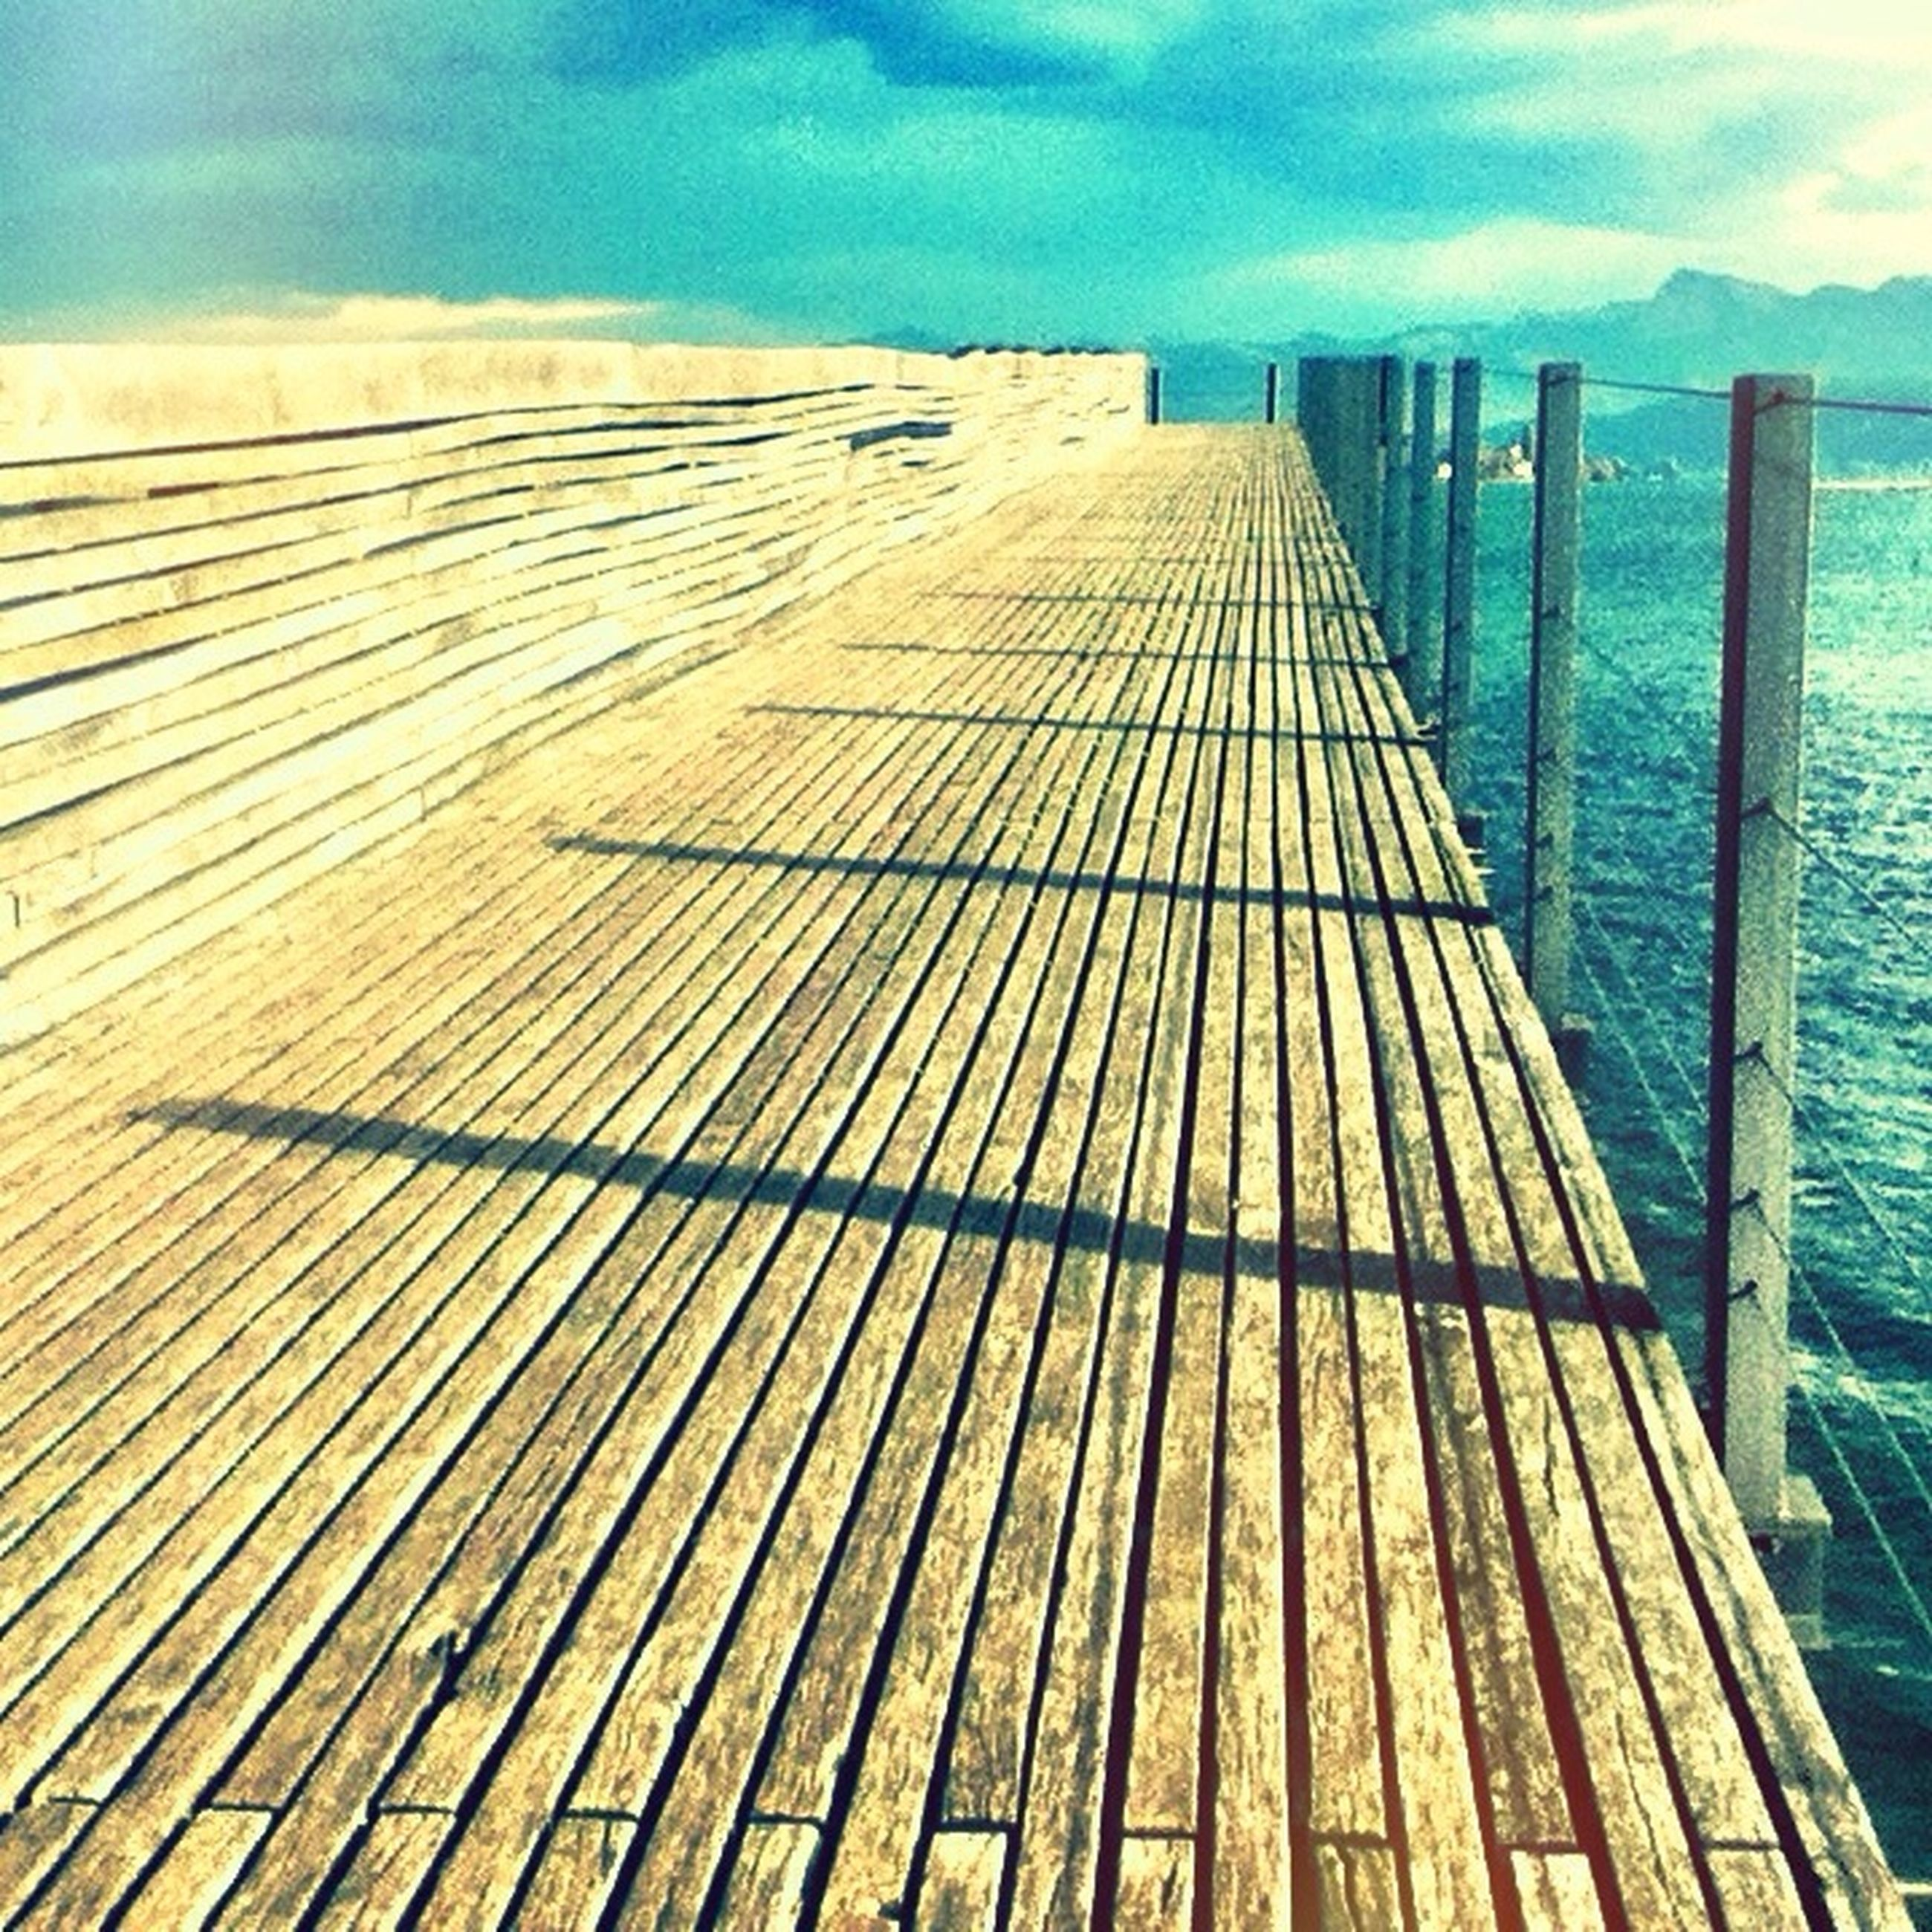 water, wood - material, pier, sea, the way forward, sky, boardwalk, wooden, railing, wood, tranquil scene, tranquility, diminishing perspective, jetty, nature, scenics, cloud - sky, beauty in nature, cloud, lake